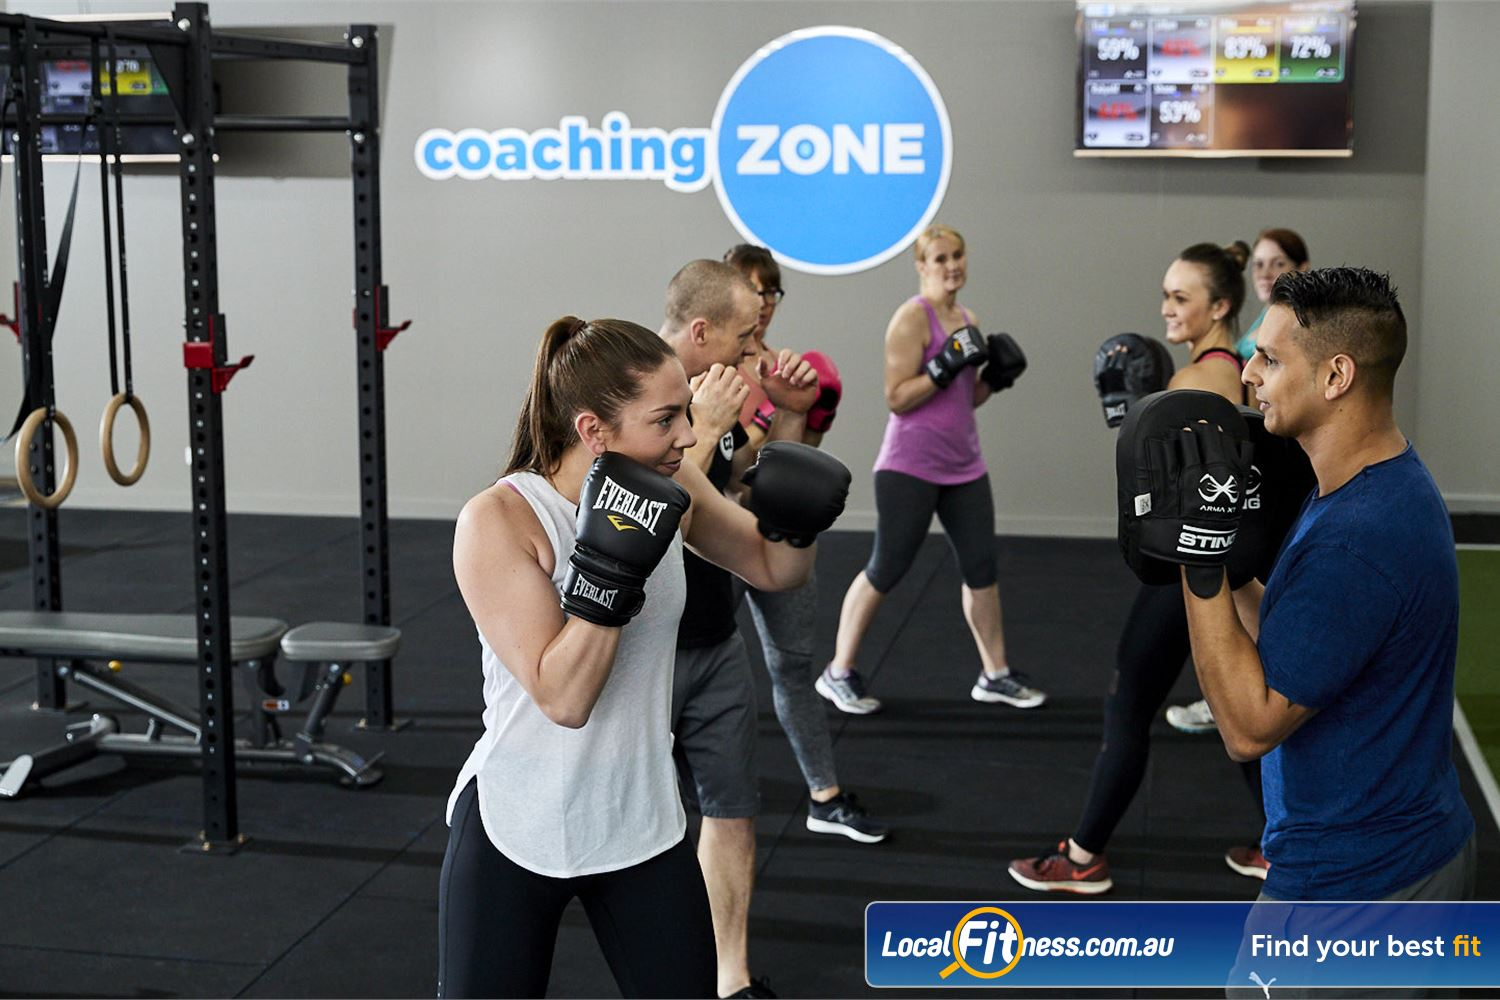 Coaching Zone Near Tremont Our Ferntree Gully boxing classes promising a whole lot of sweaty fun.